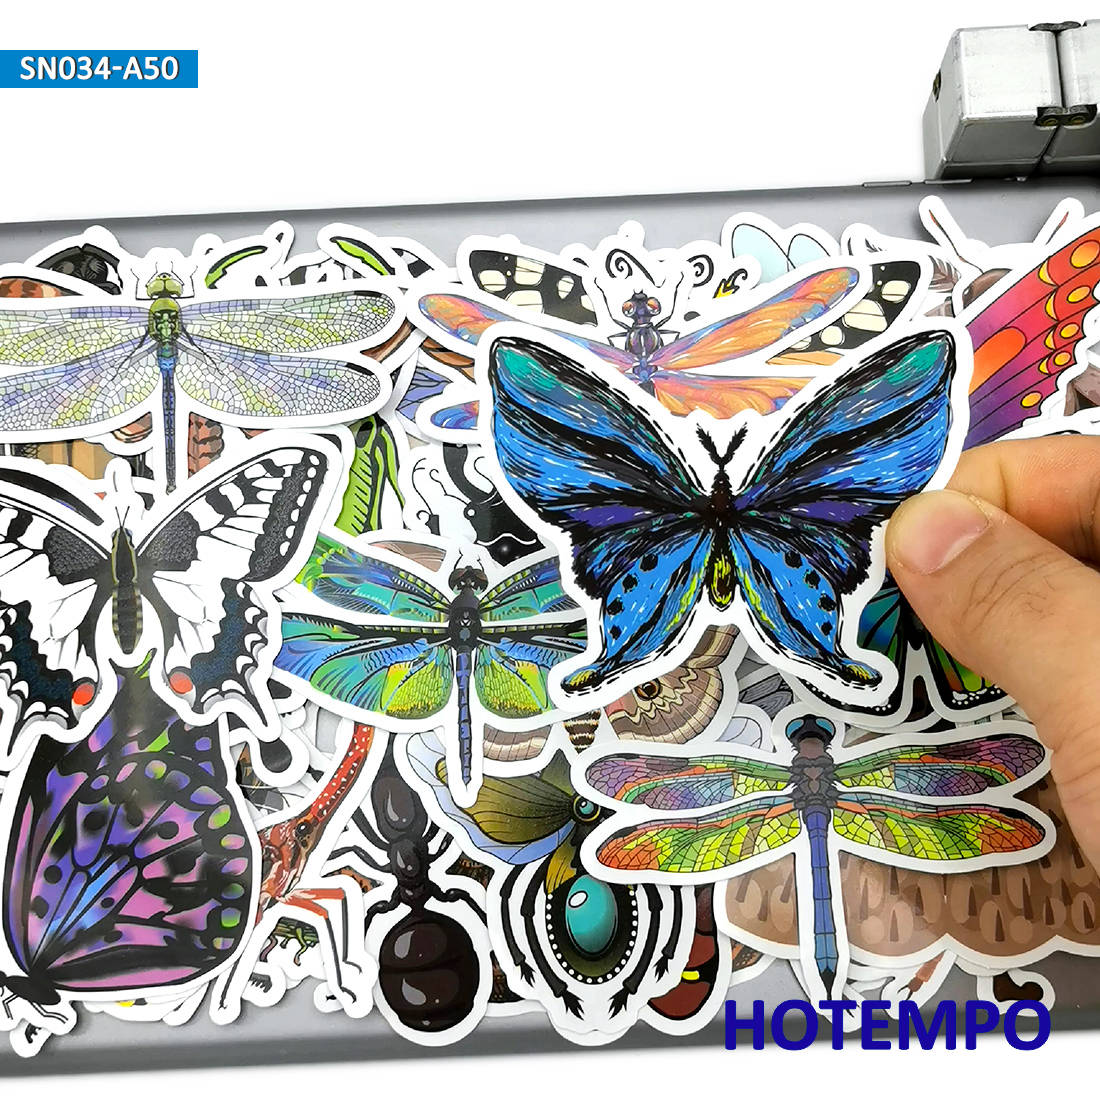 50pcs Funny Insect Butterfly Dragonfly Stickers Toys For Children Kids Gift Scrapbook Stationery Mobile Phone Laptop Art Sticker